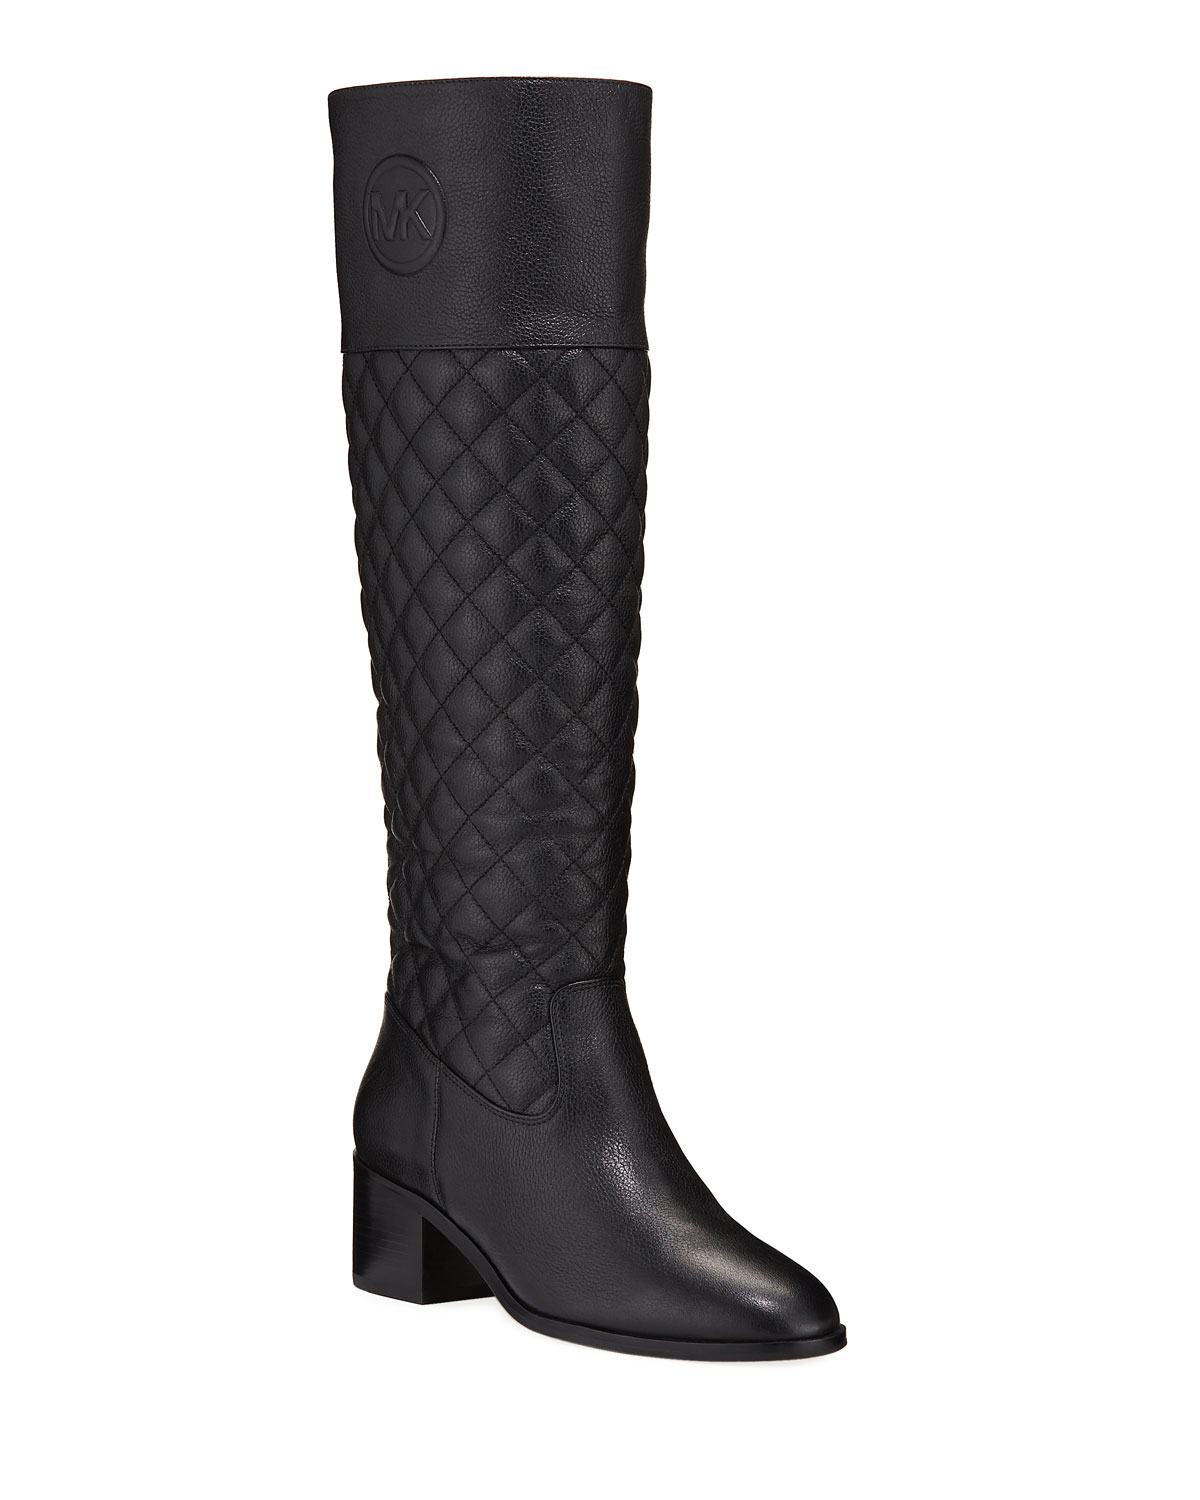 Dylyn Leather Zip Knee Boots